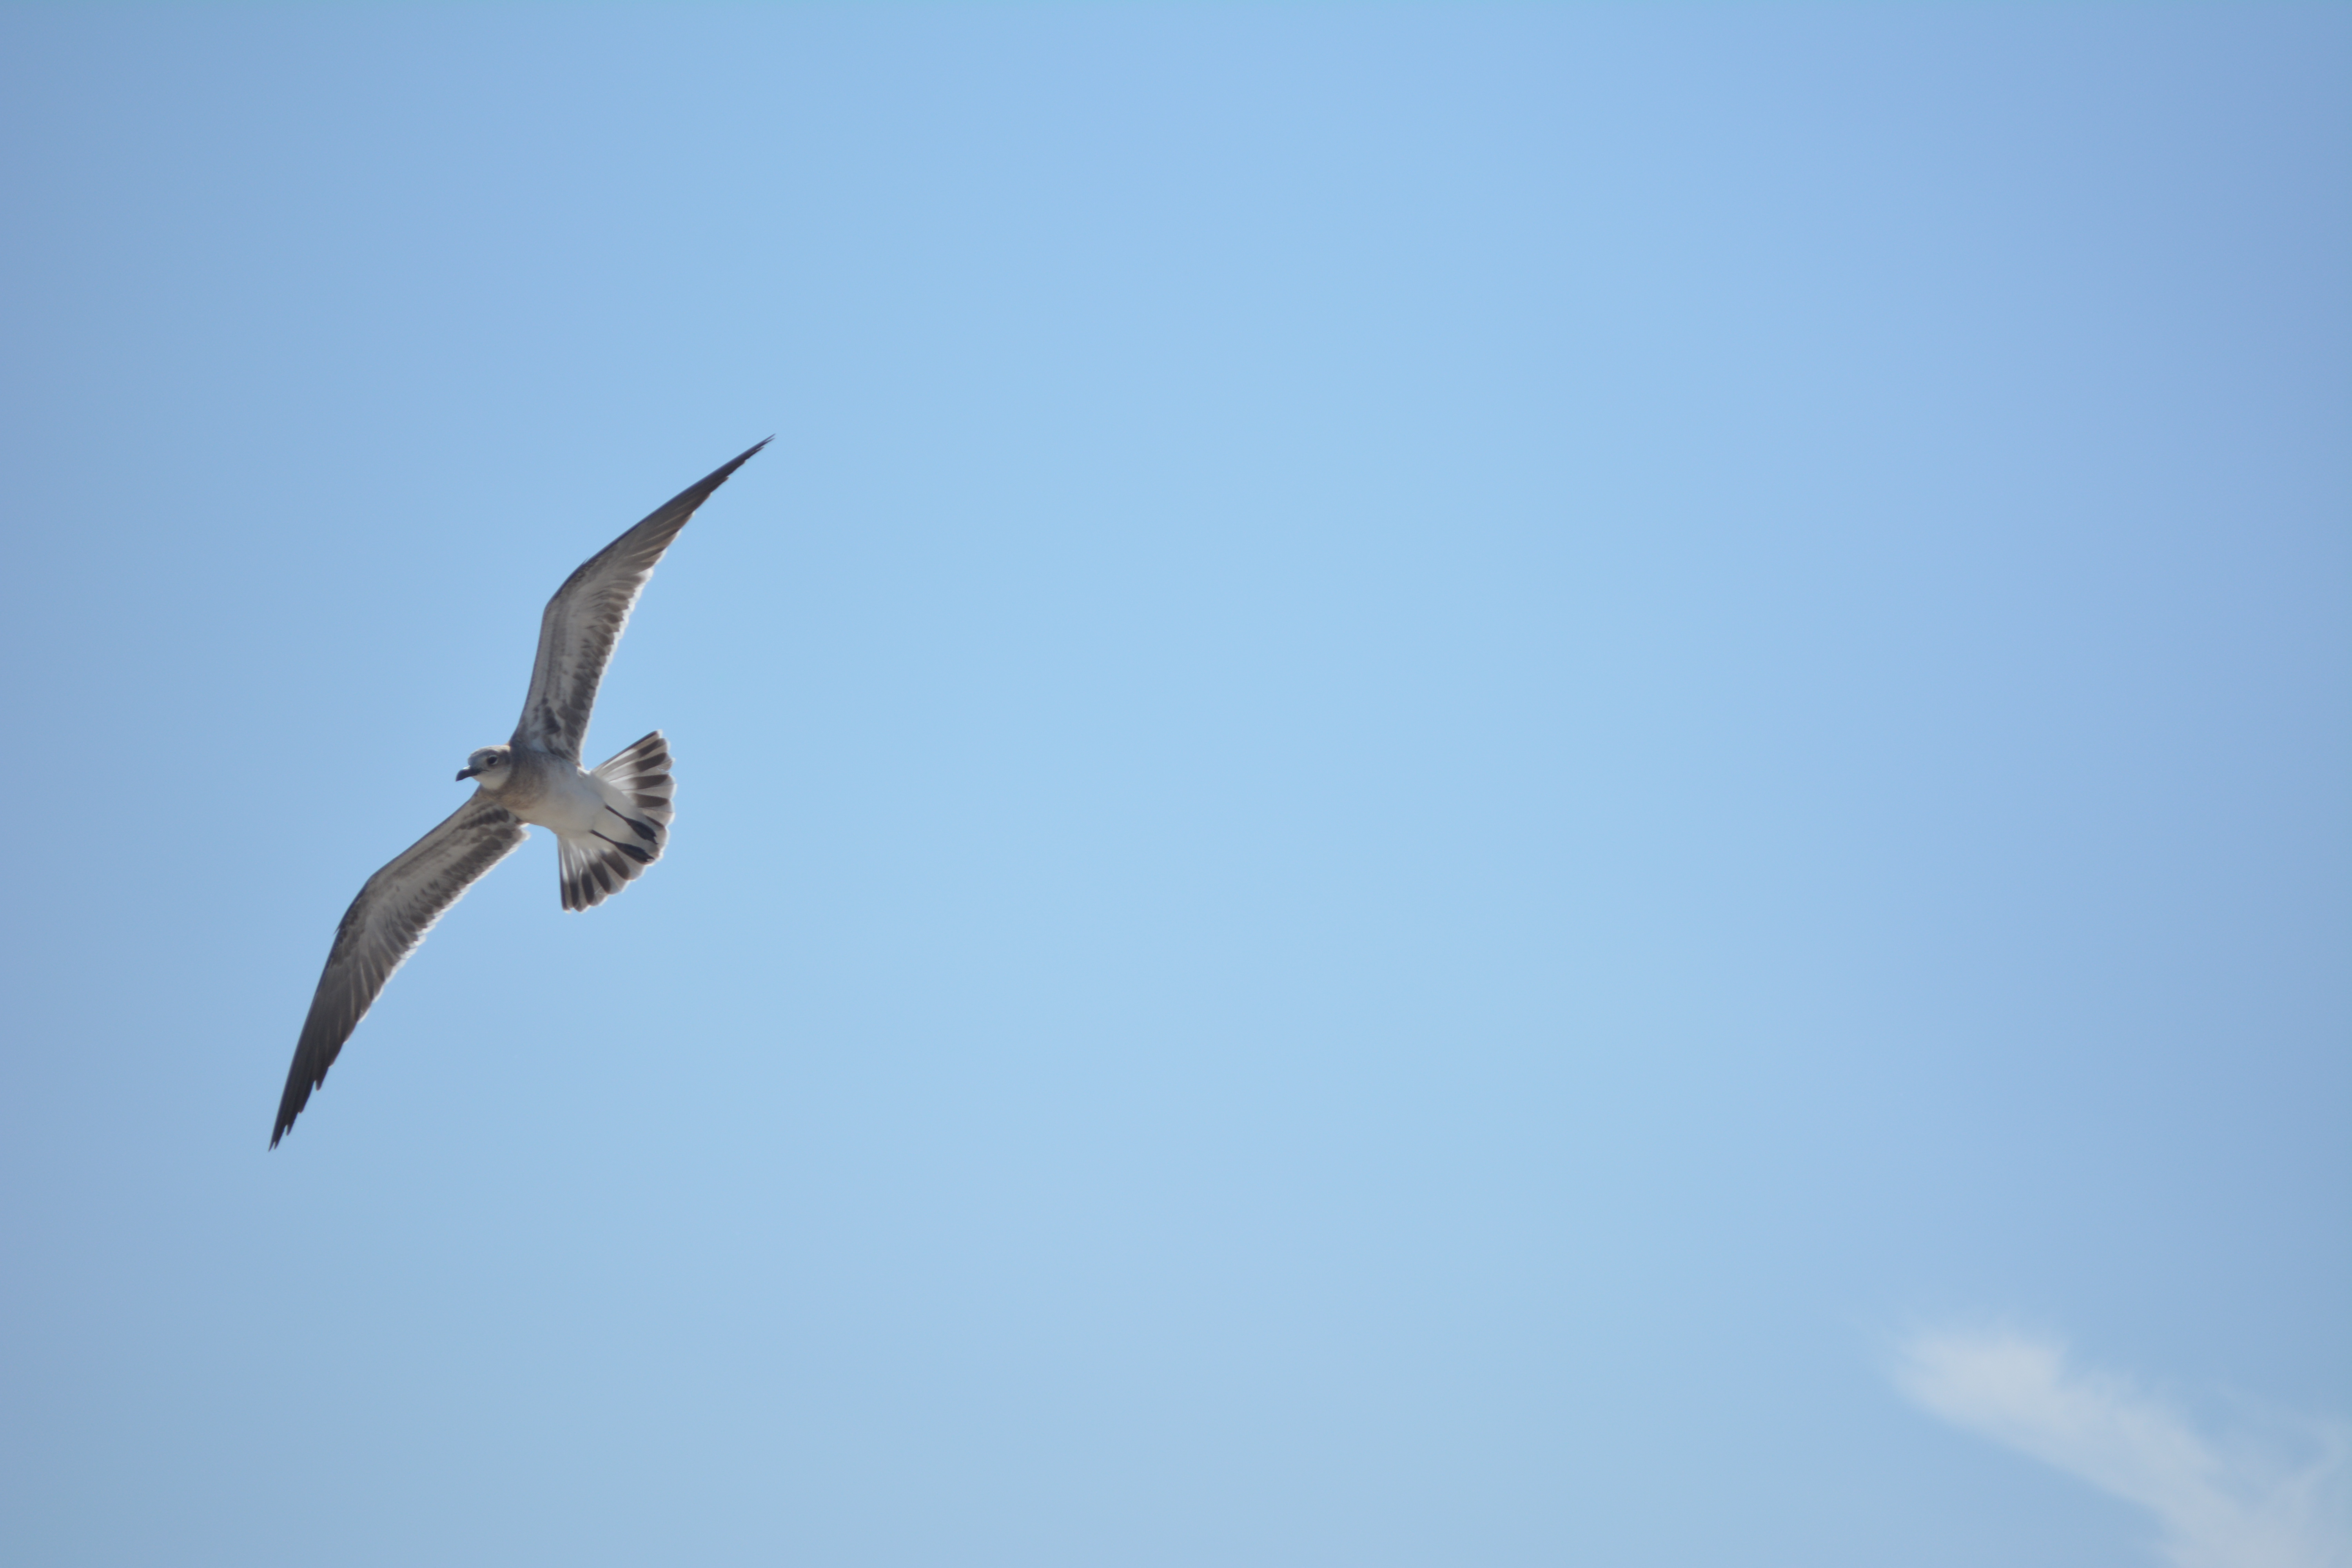 Did you know seagulls are clever intelligent birds donna george seagull altavistaventures Image collections